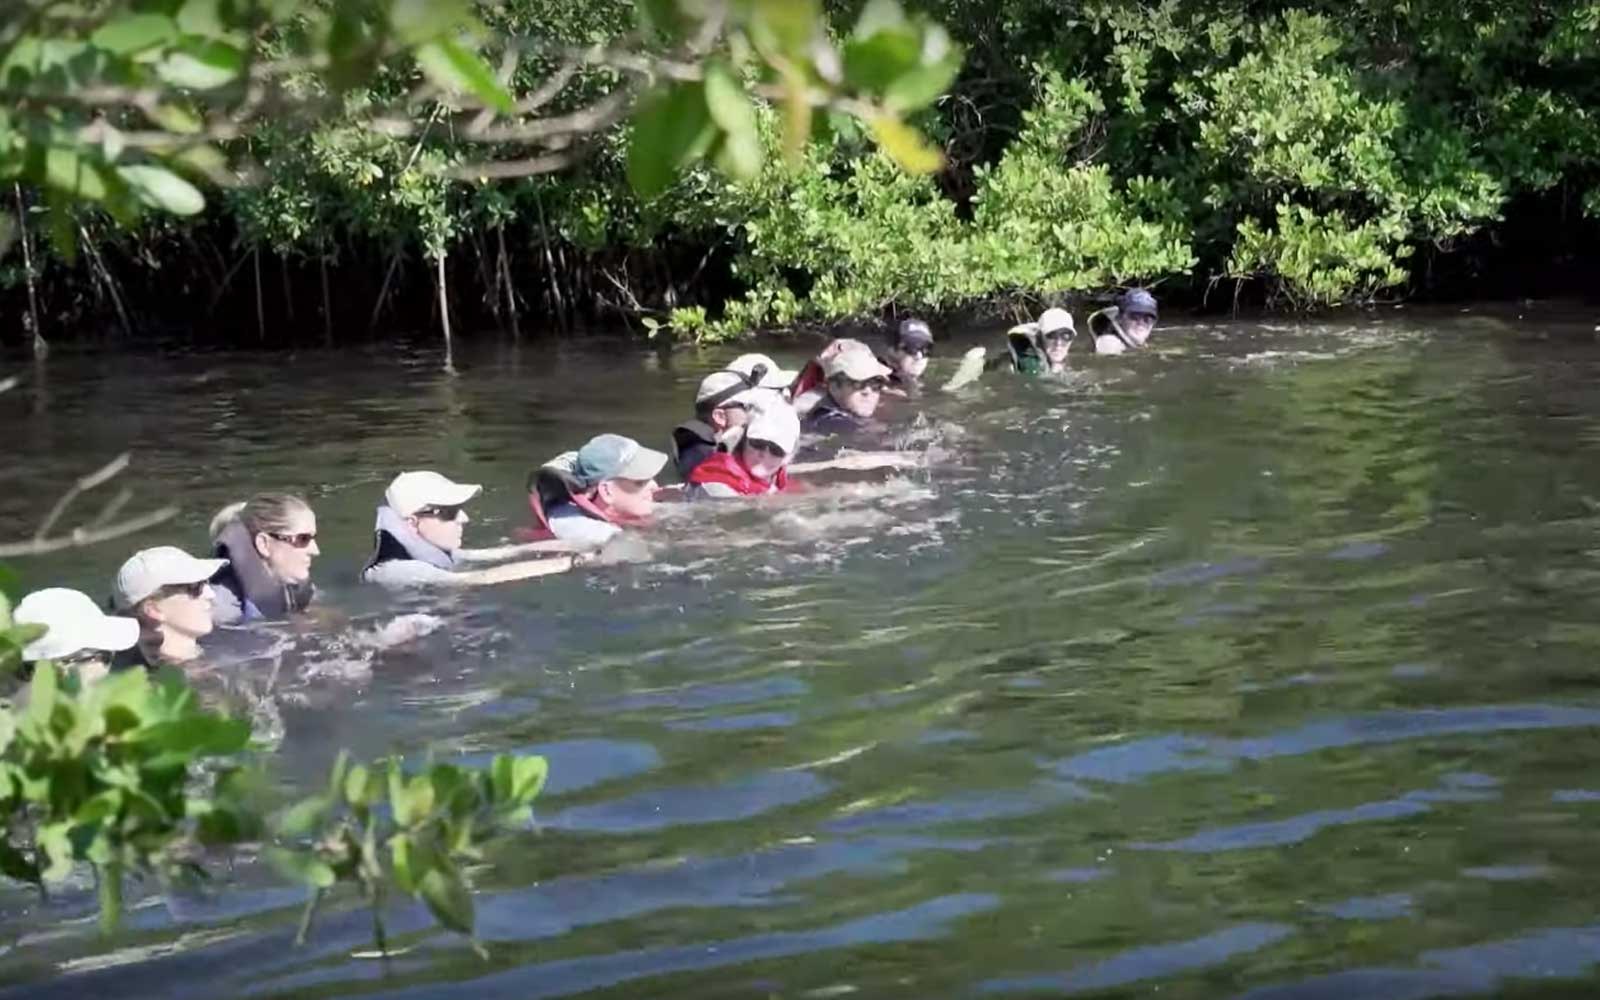 14 people created a human chain to lead trapped dolphins out of Florida canal